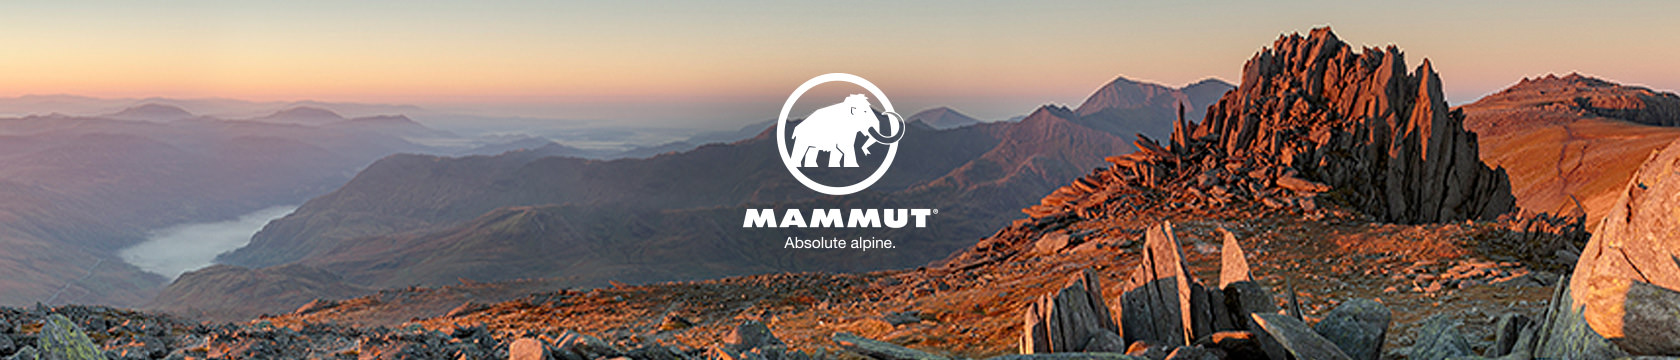 People running through a cave wearing mammut